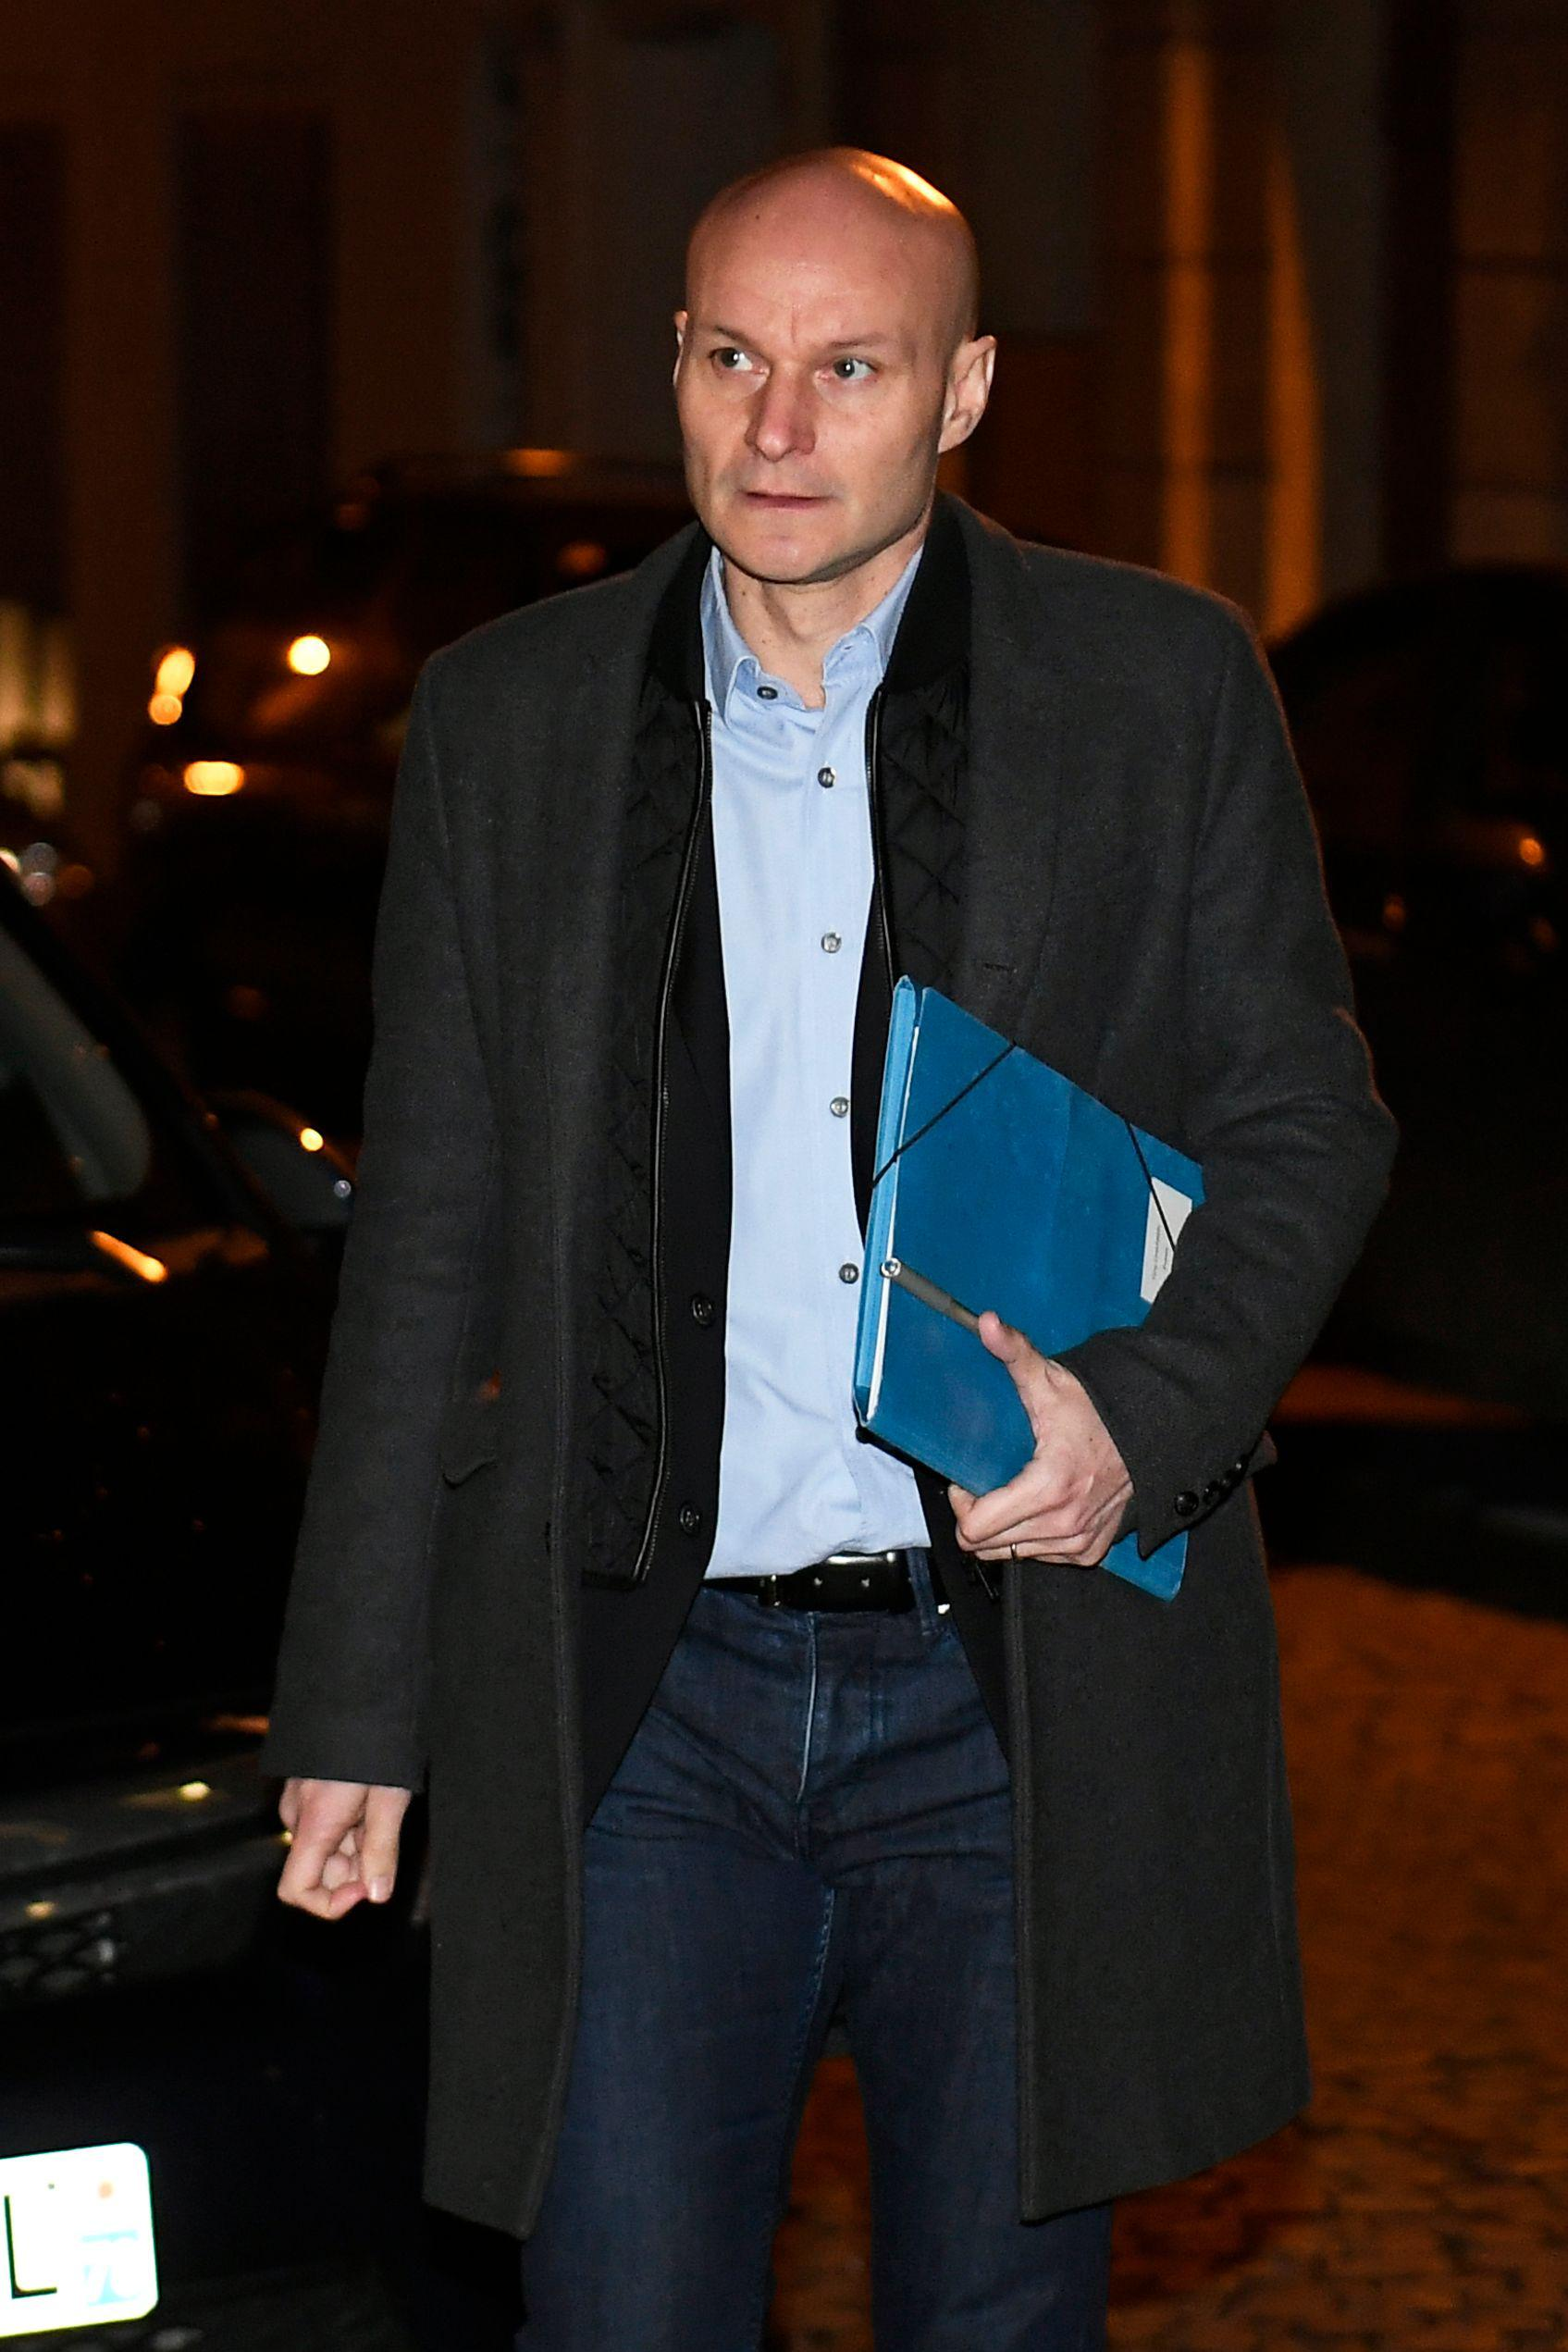 Tony Chapron arrives to appear before French football authorities